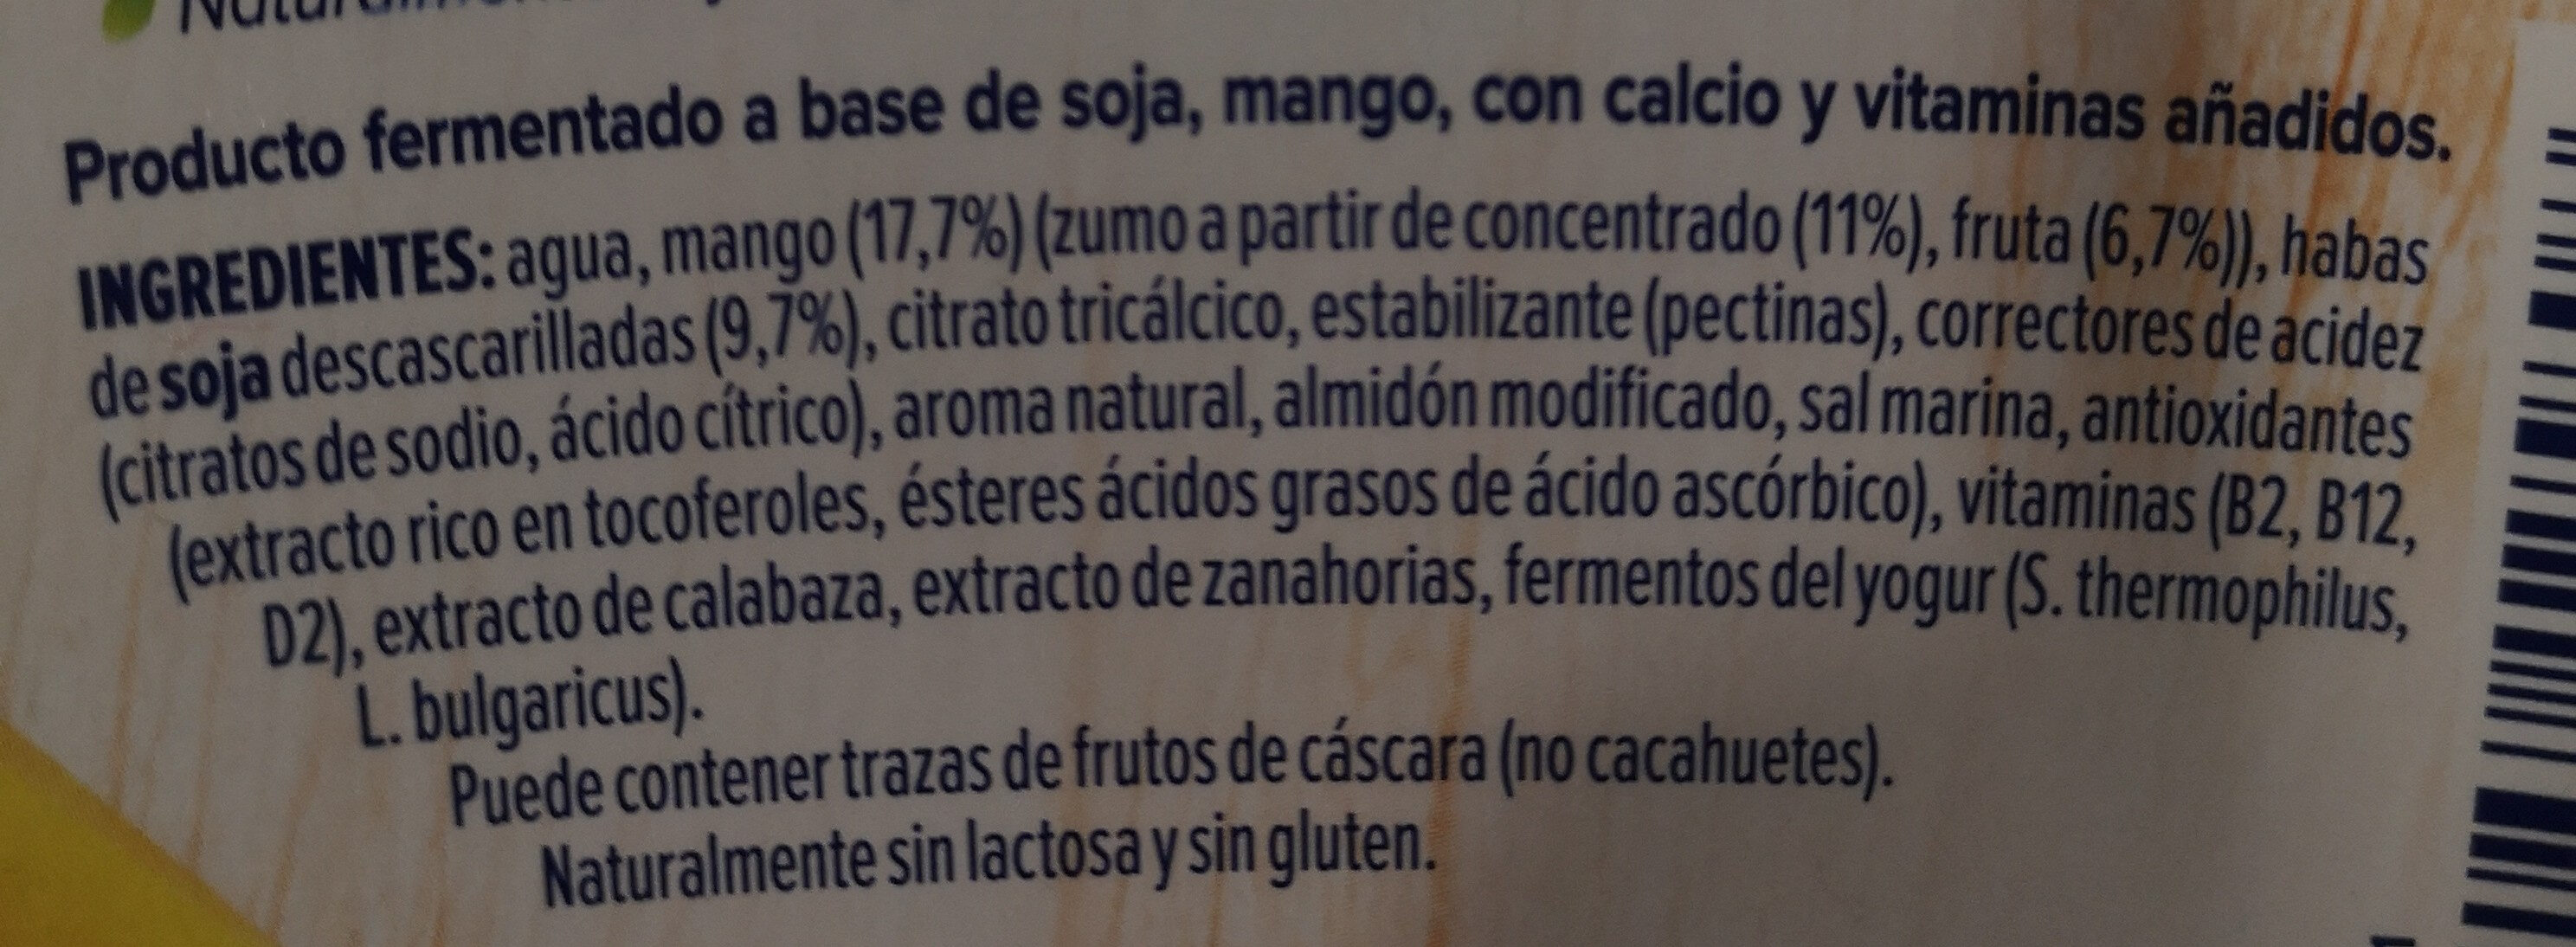 Alpro Mango - Ingredientes